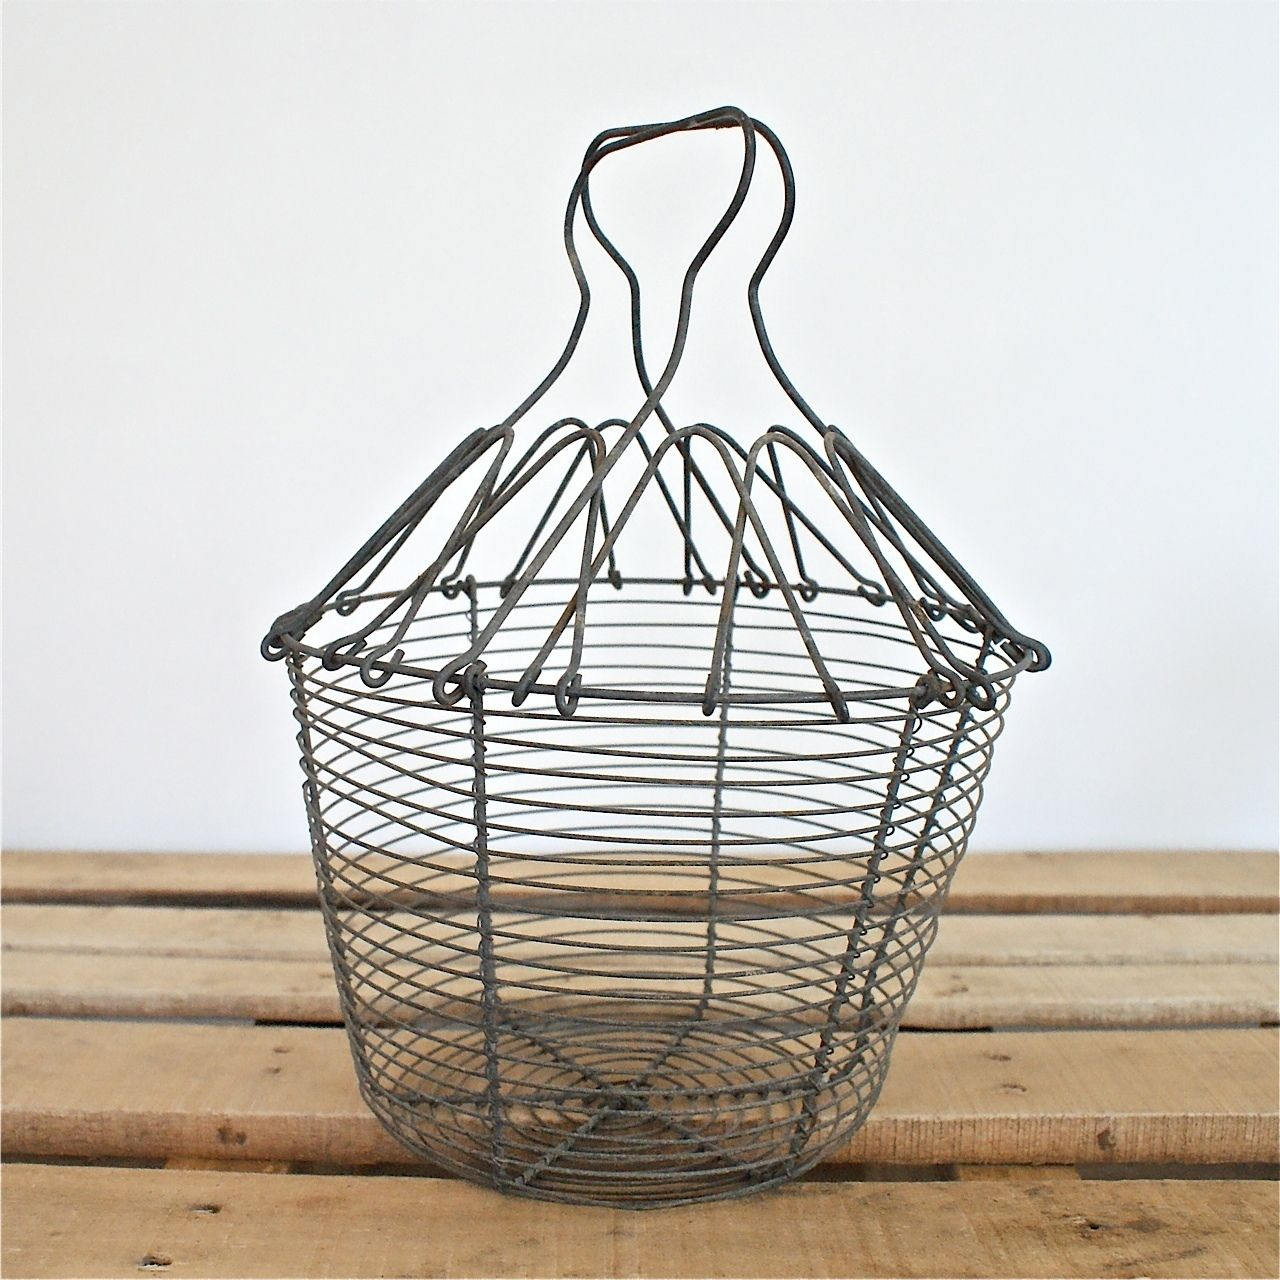 Deleted_20716_french vintage wire egg basket by bayside